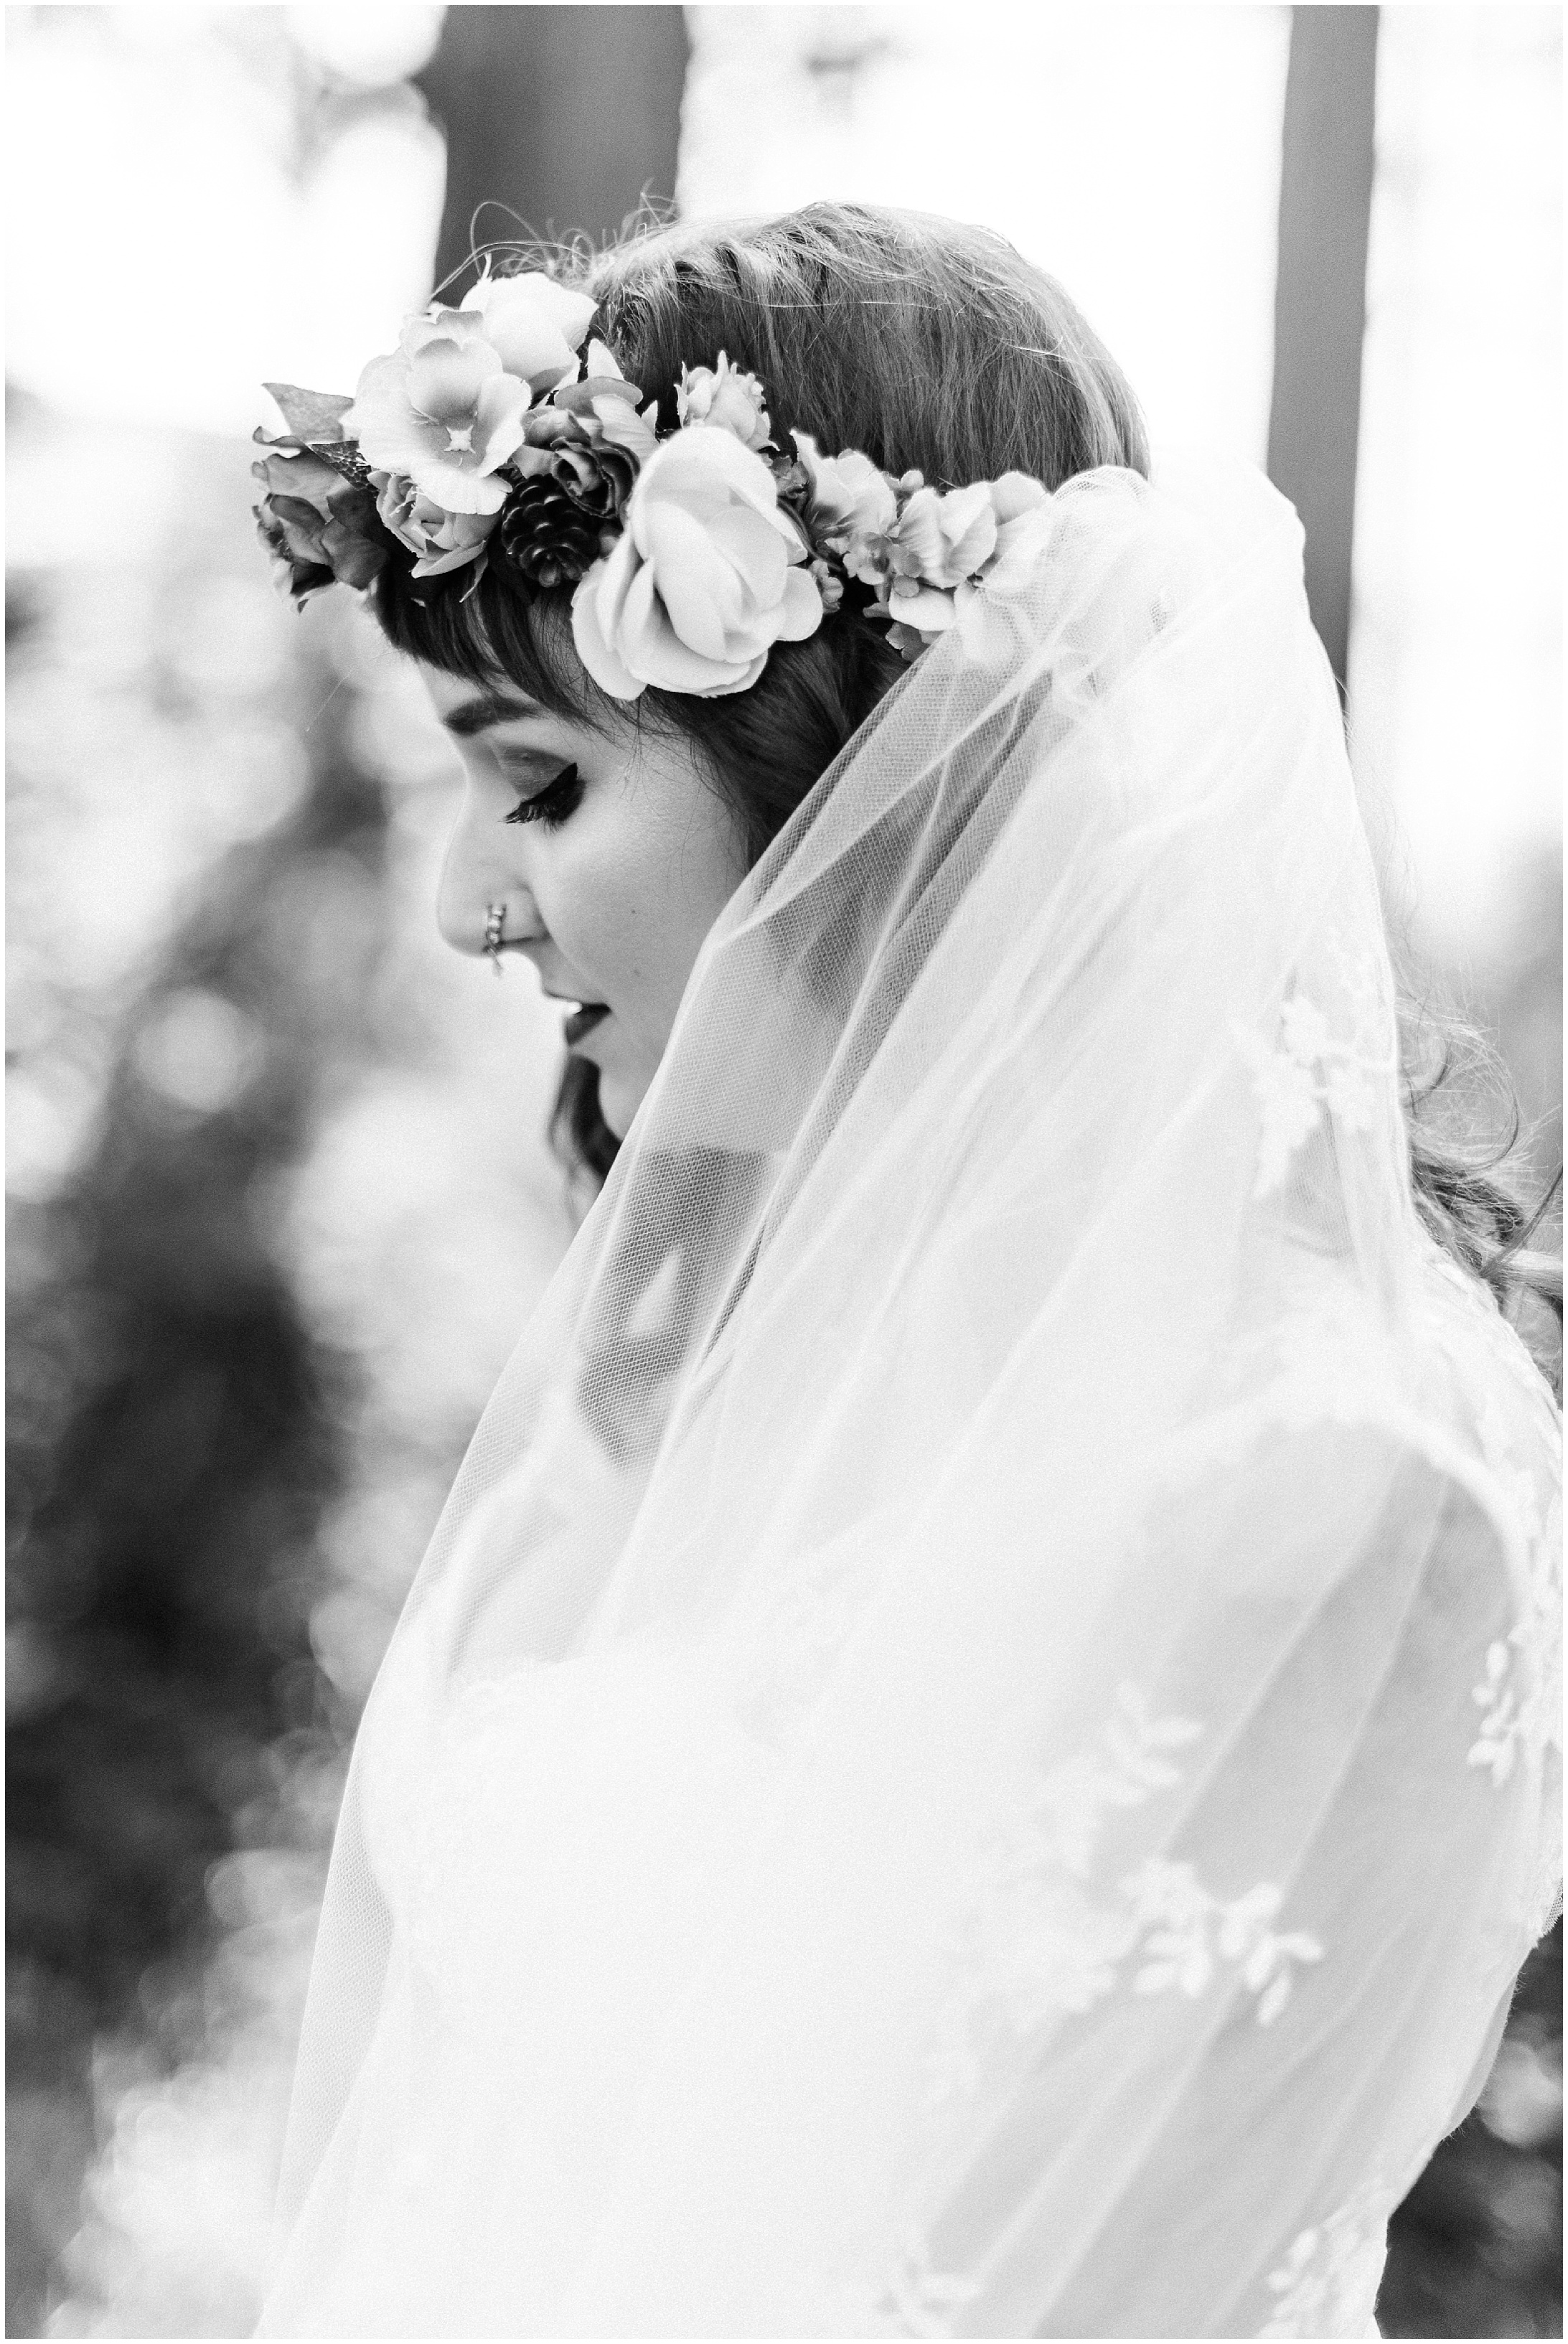 Black and white photo of a bride with her veil blowing in the wind